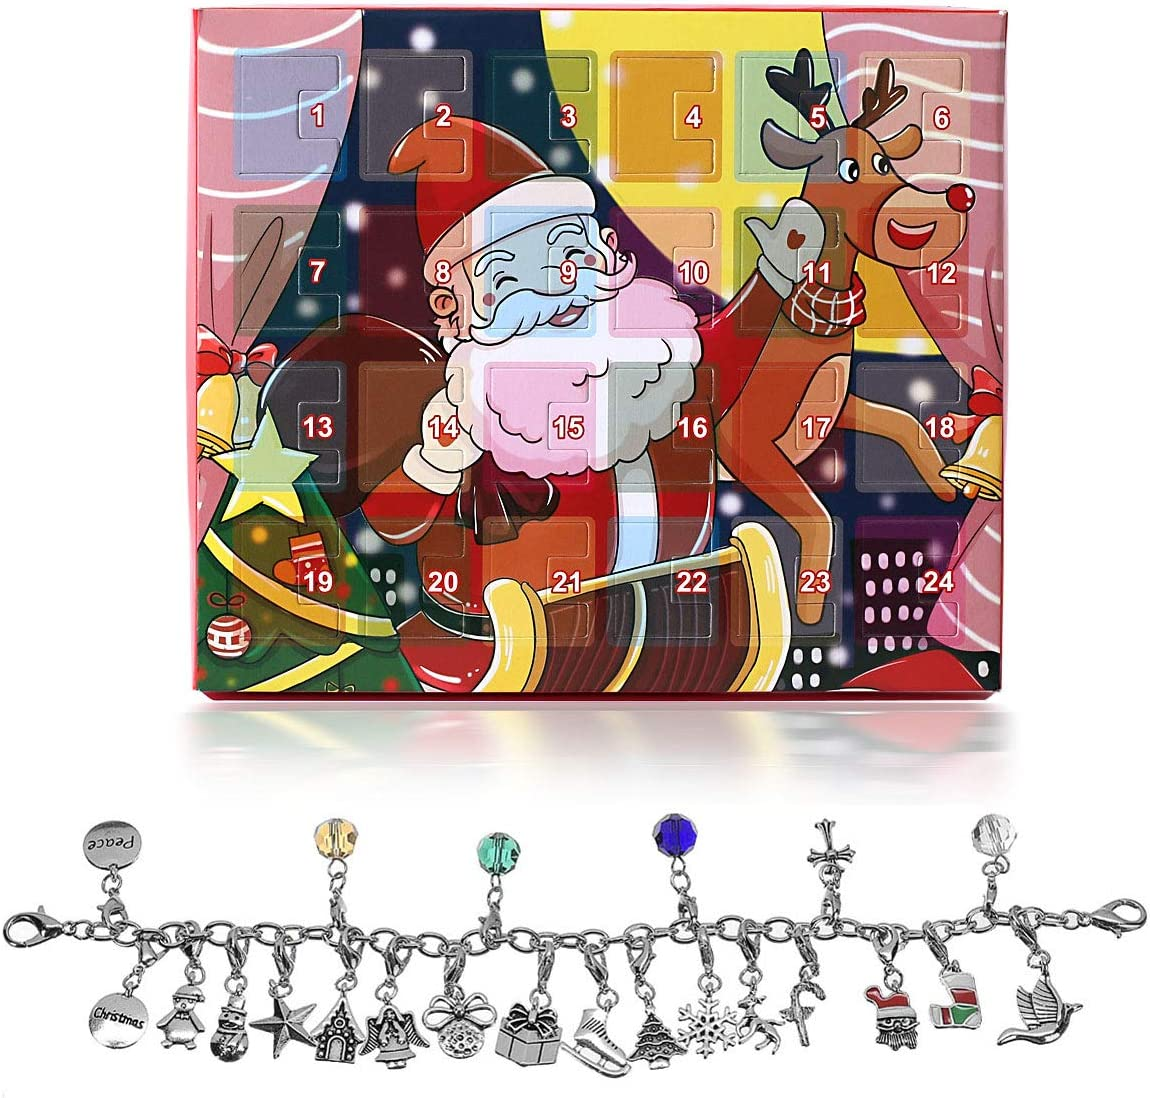 ZKer Christmas Countdown Calendar 2020, Jewelry Advent Calendar Girls Christmas Calendar Gift DIY Bracelet Necklace Set w/ 22 DIY Charms Fashion Jewelry for Christmas Thanksgiving Day